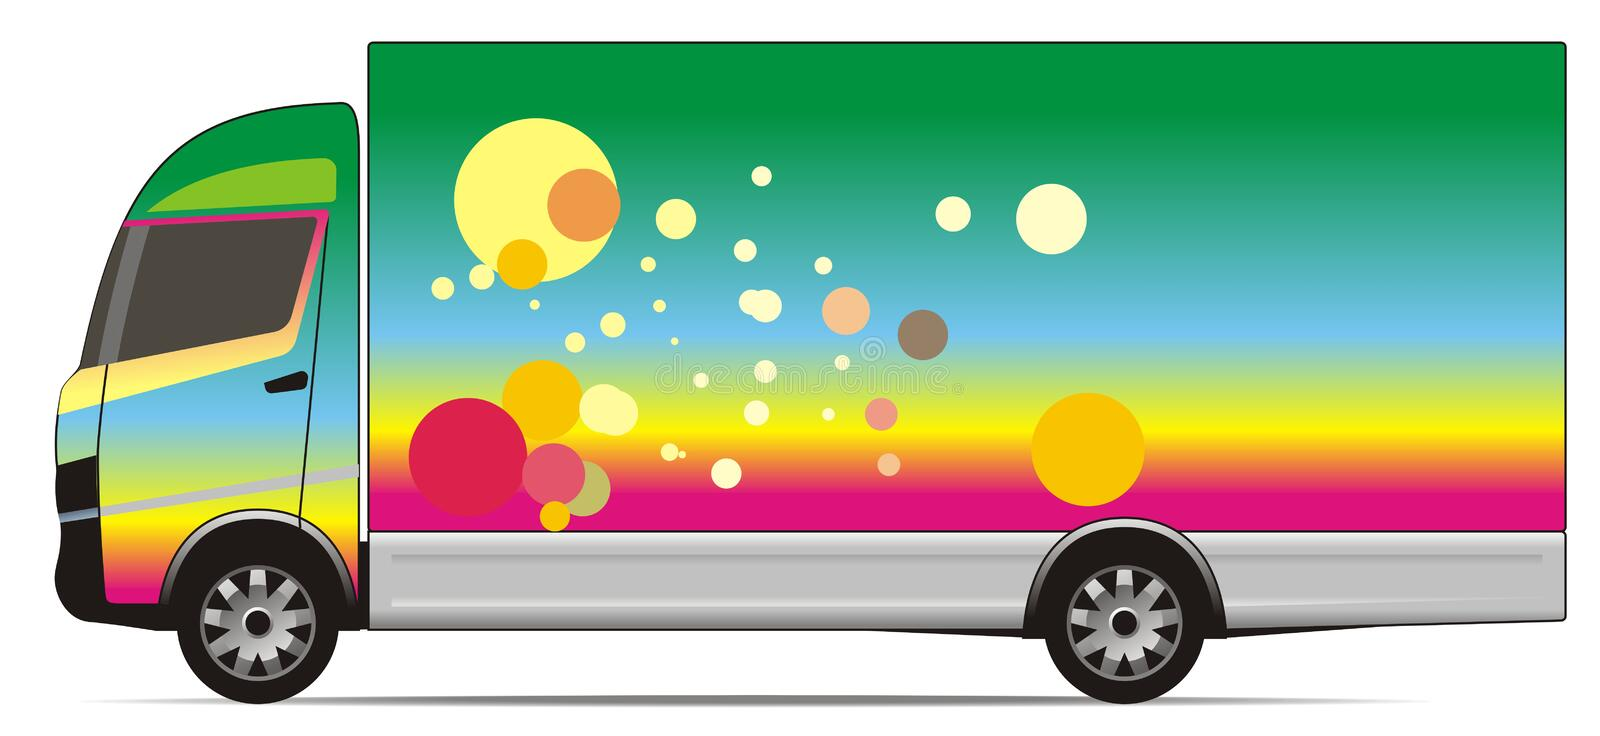 Download Colorful truck stock illustration. Image of dots, color - 8274649